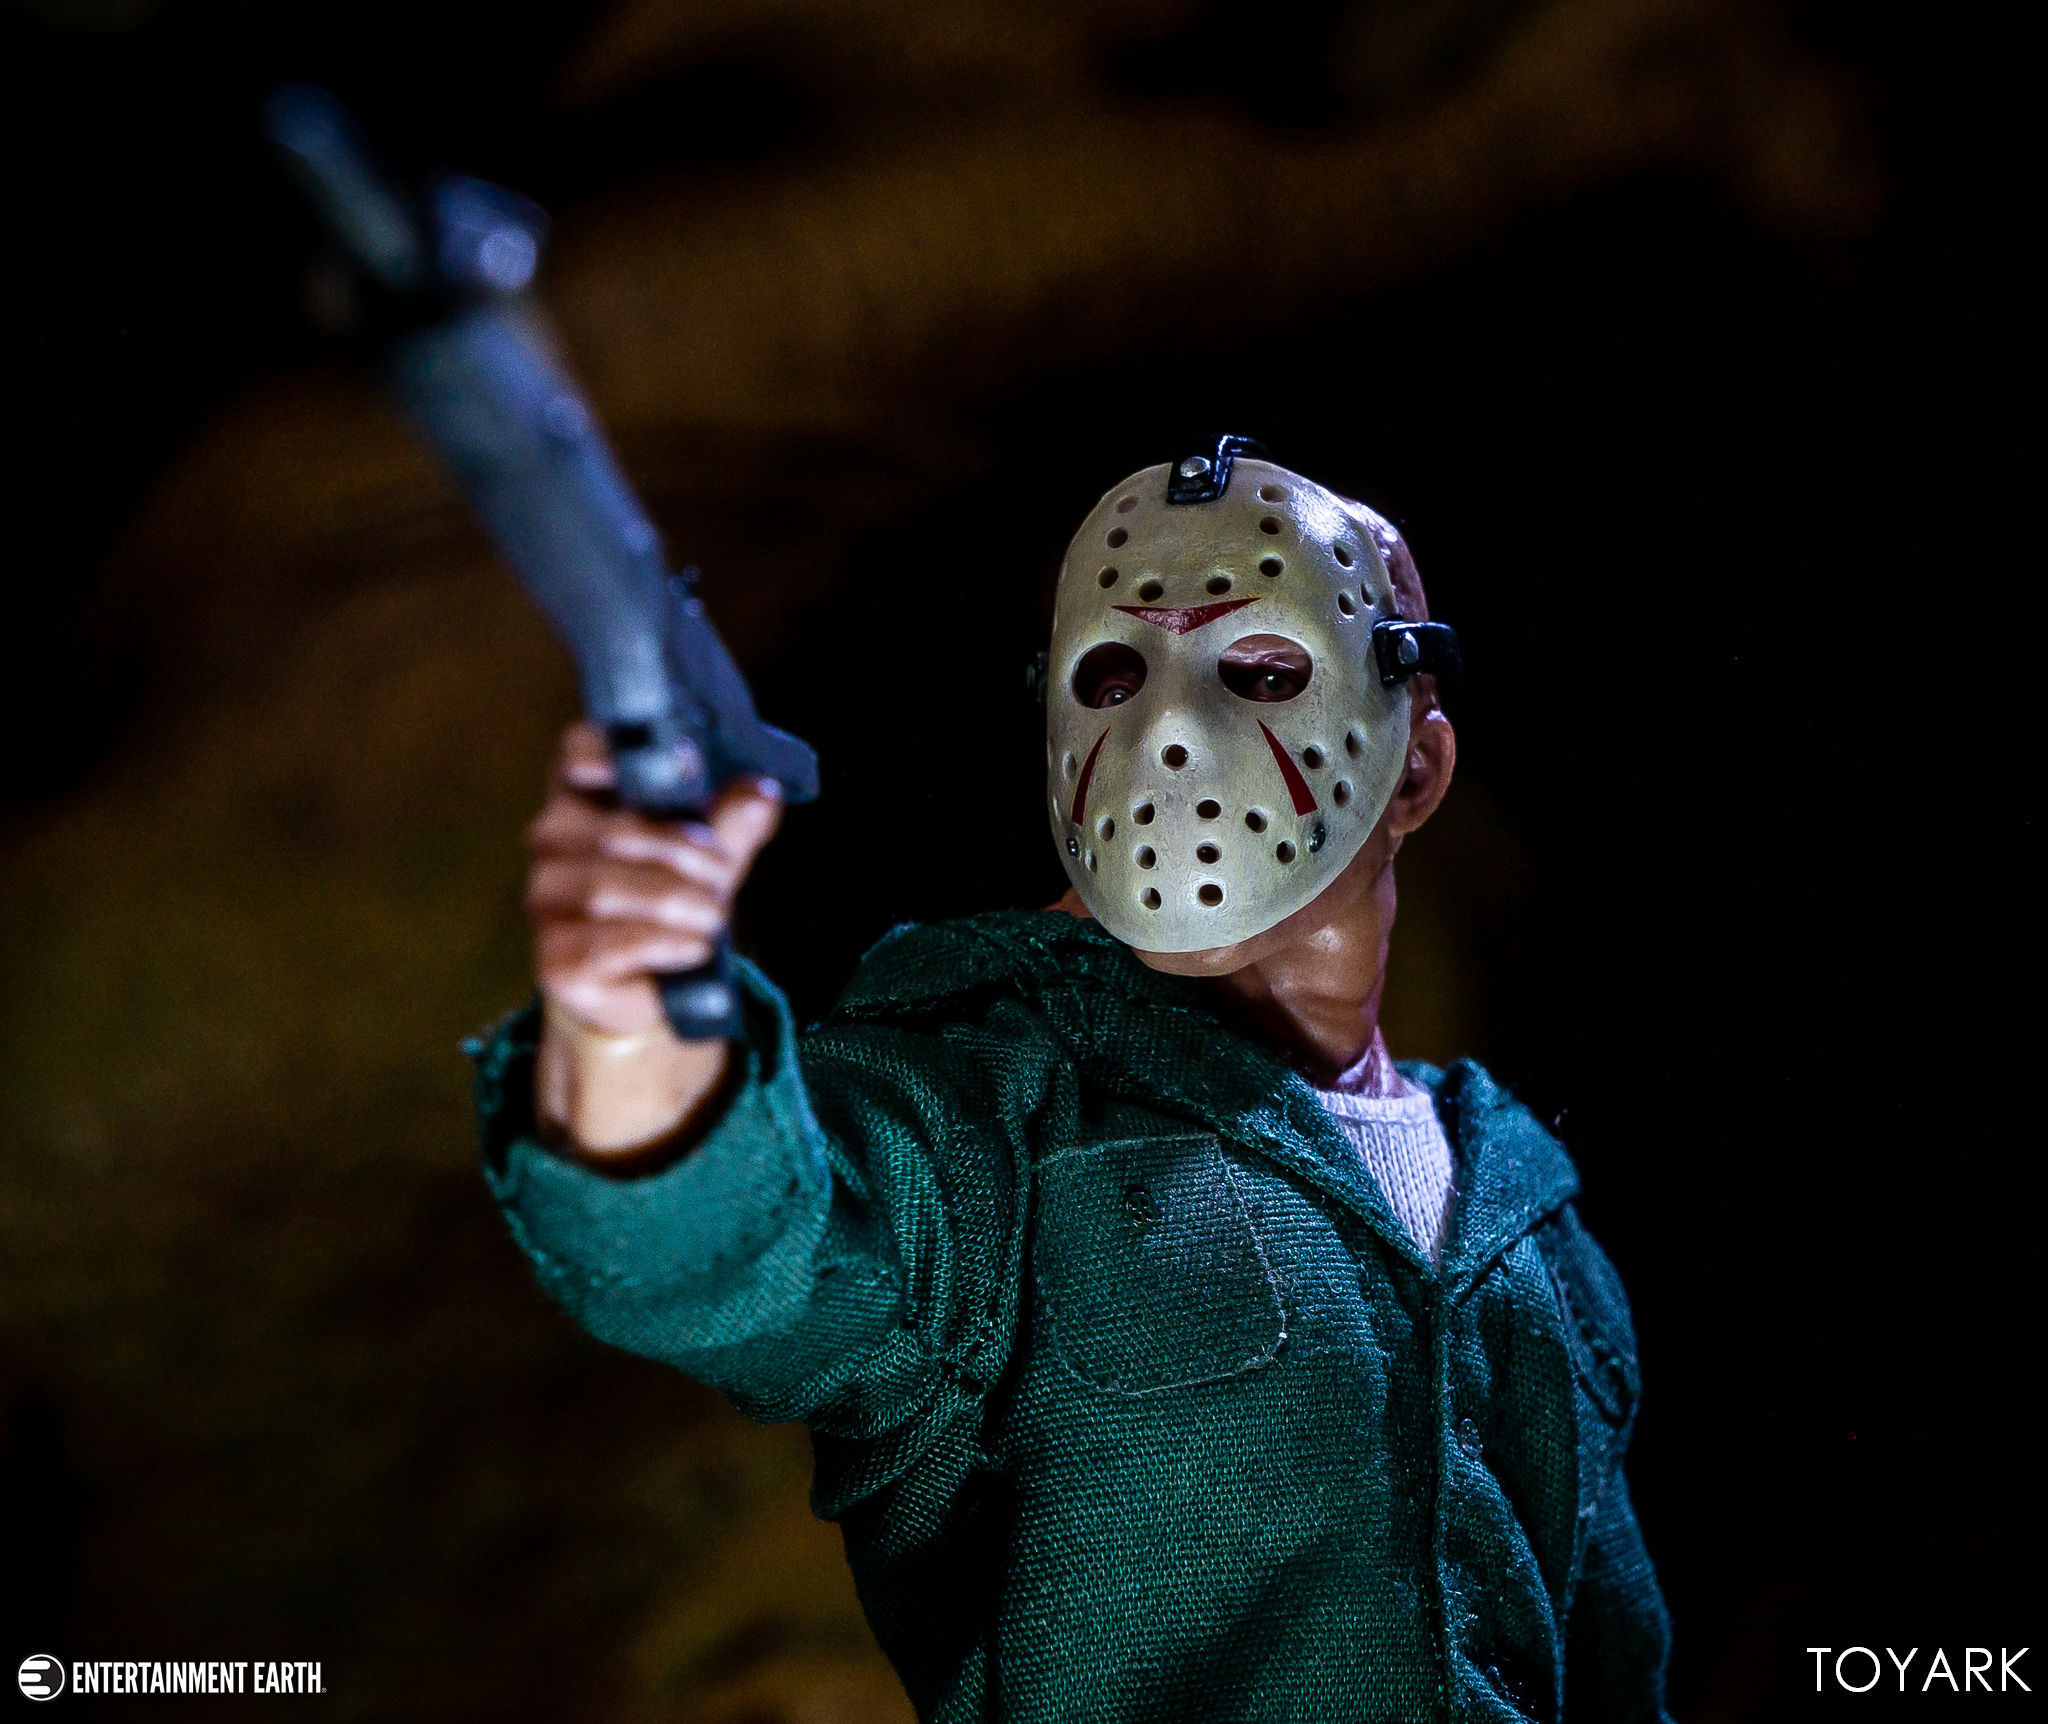 https://news.toyark.com/wp-content/uploads/sites/4/2019/04/One12-Part-3-Jason-Voorhees-047.jpg